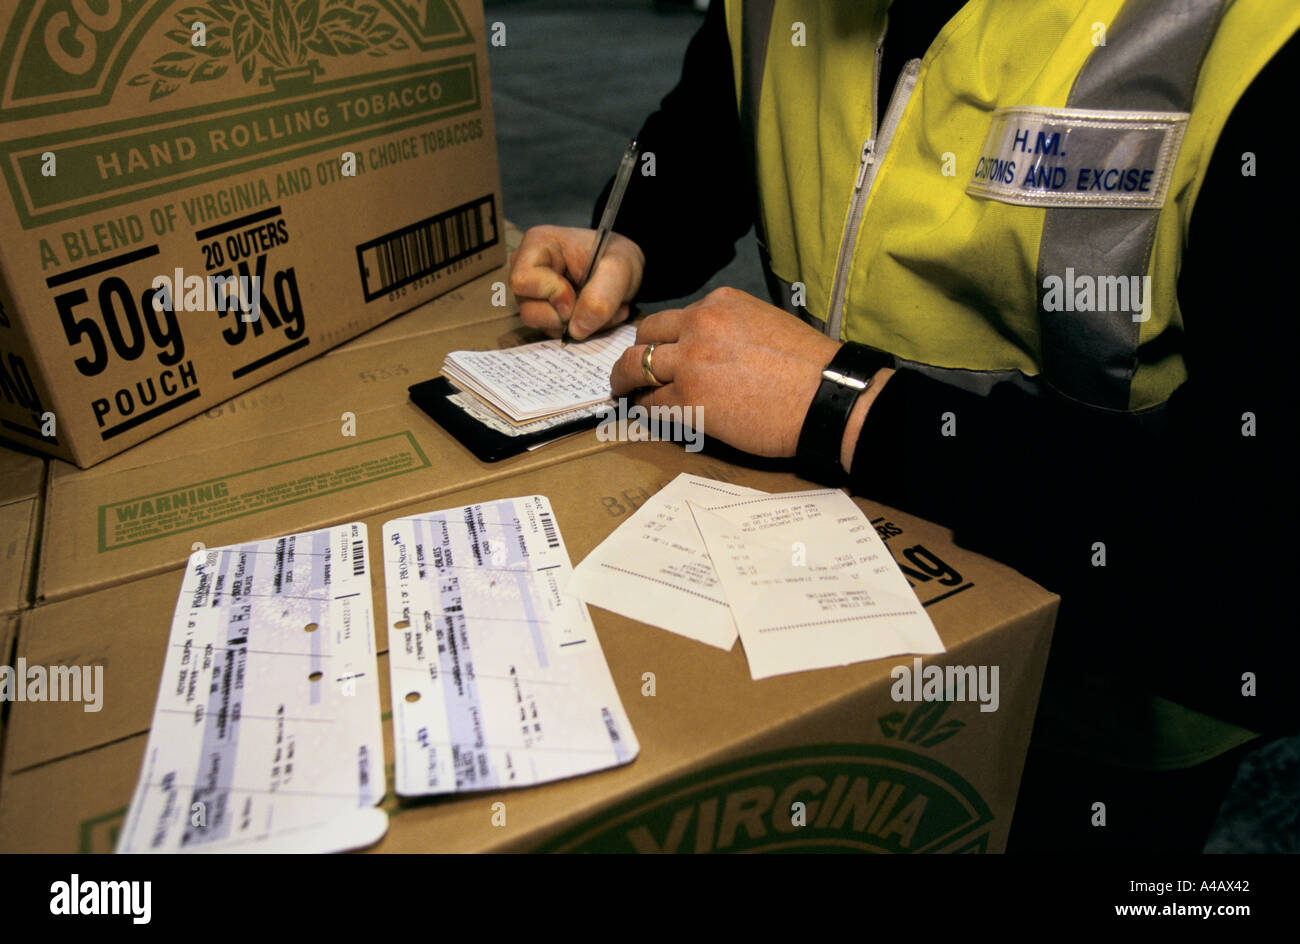 customs officer stock photos customs officer stock images alamy a customs excise officer at dover port on england s south coast catalogues goods being confiscated